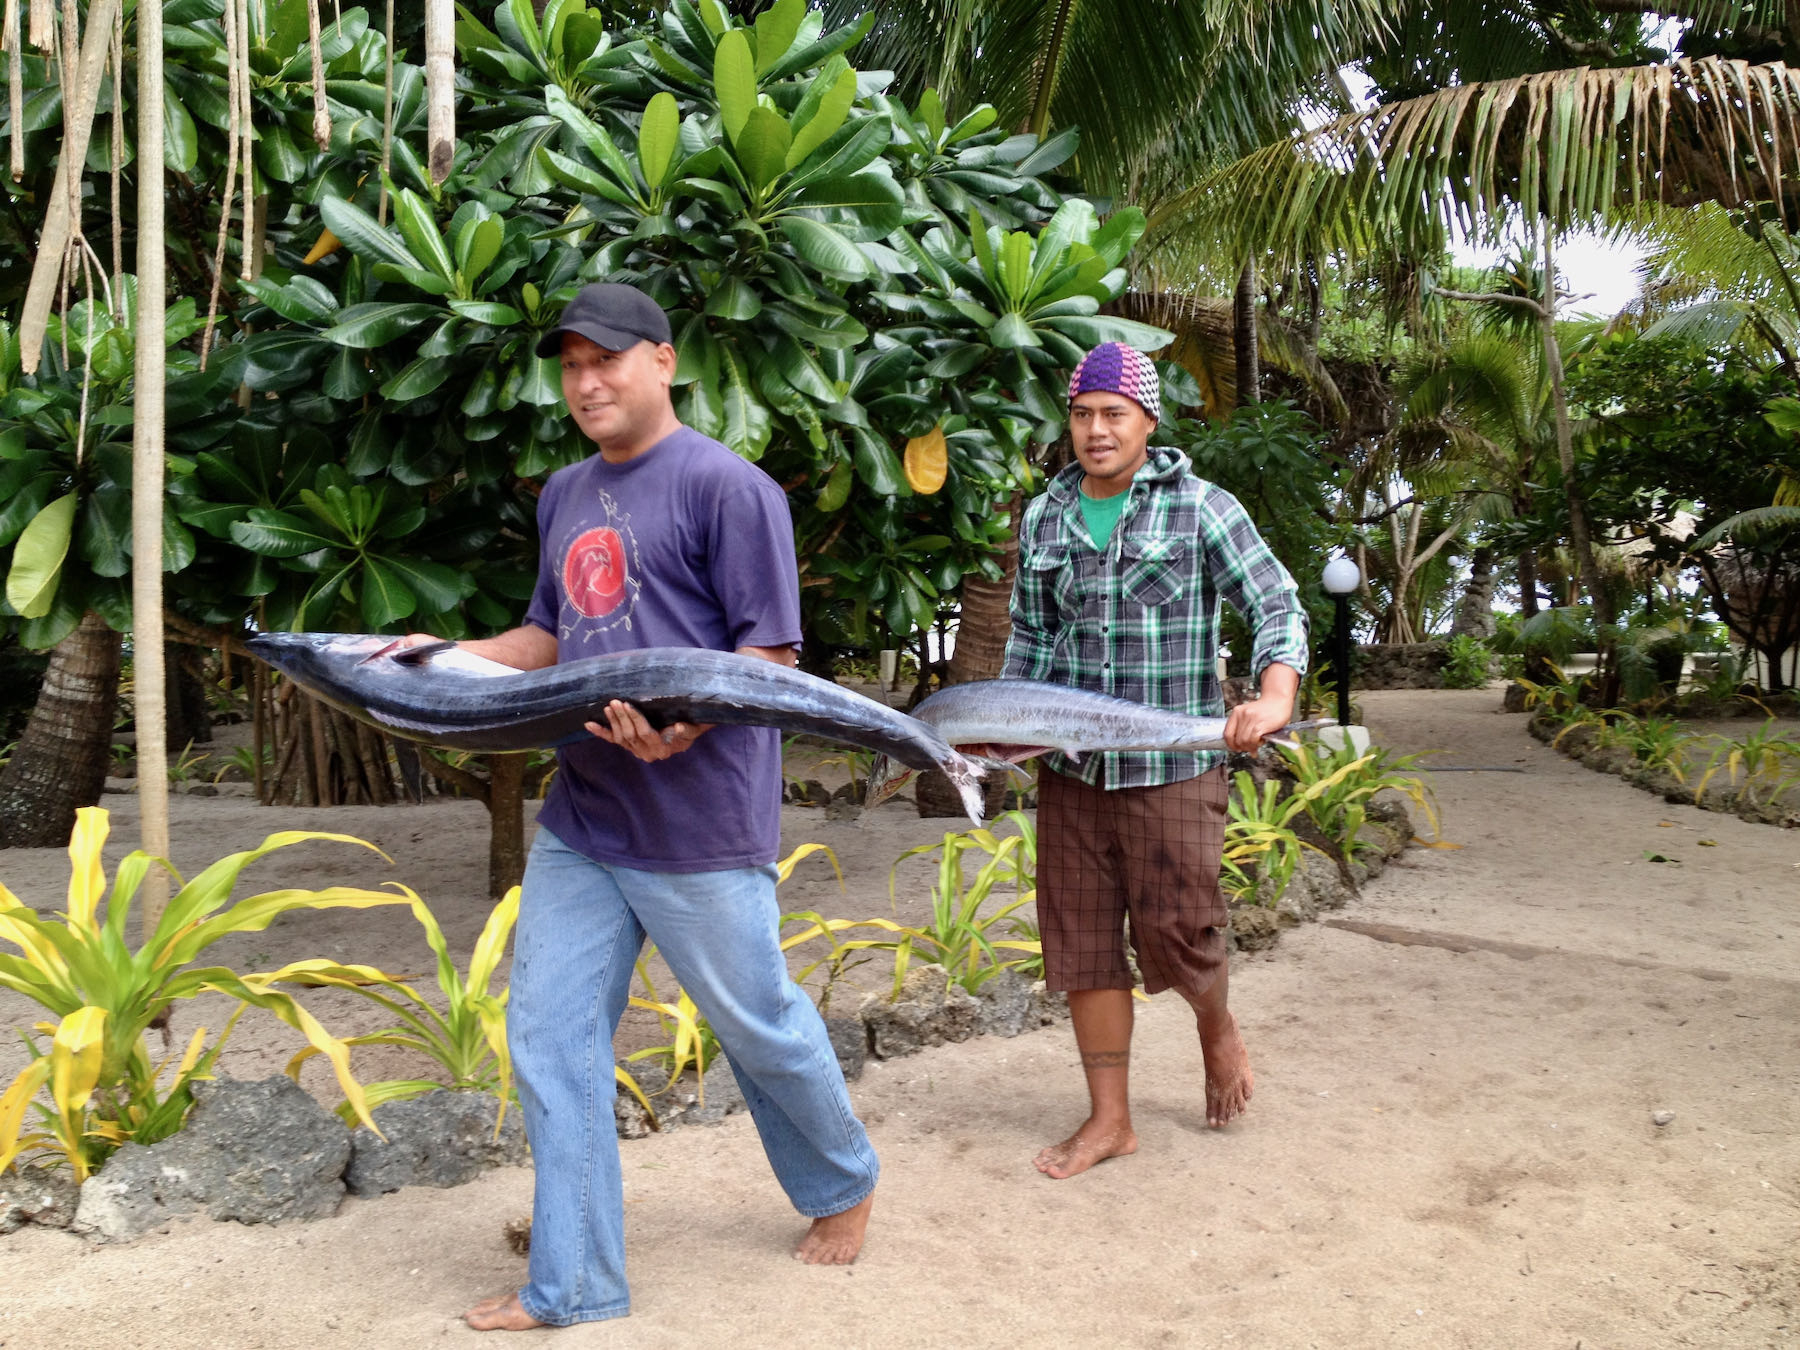 Two mean, each carrying a large fish.